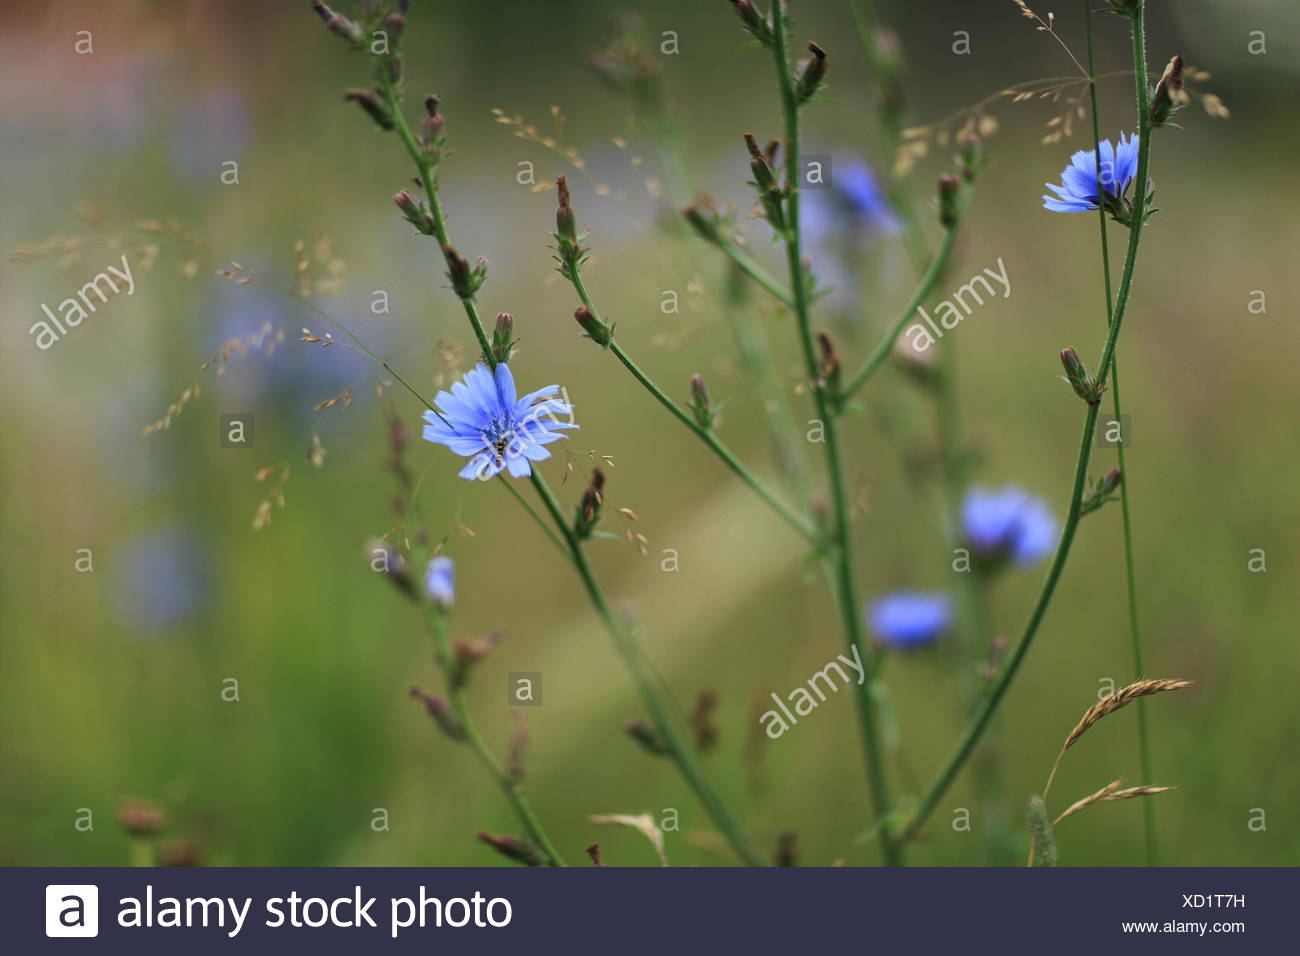 Blue Wild Flowers On A Field - Stock Image